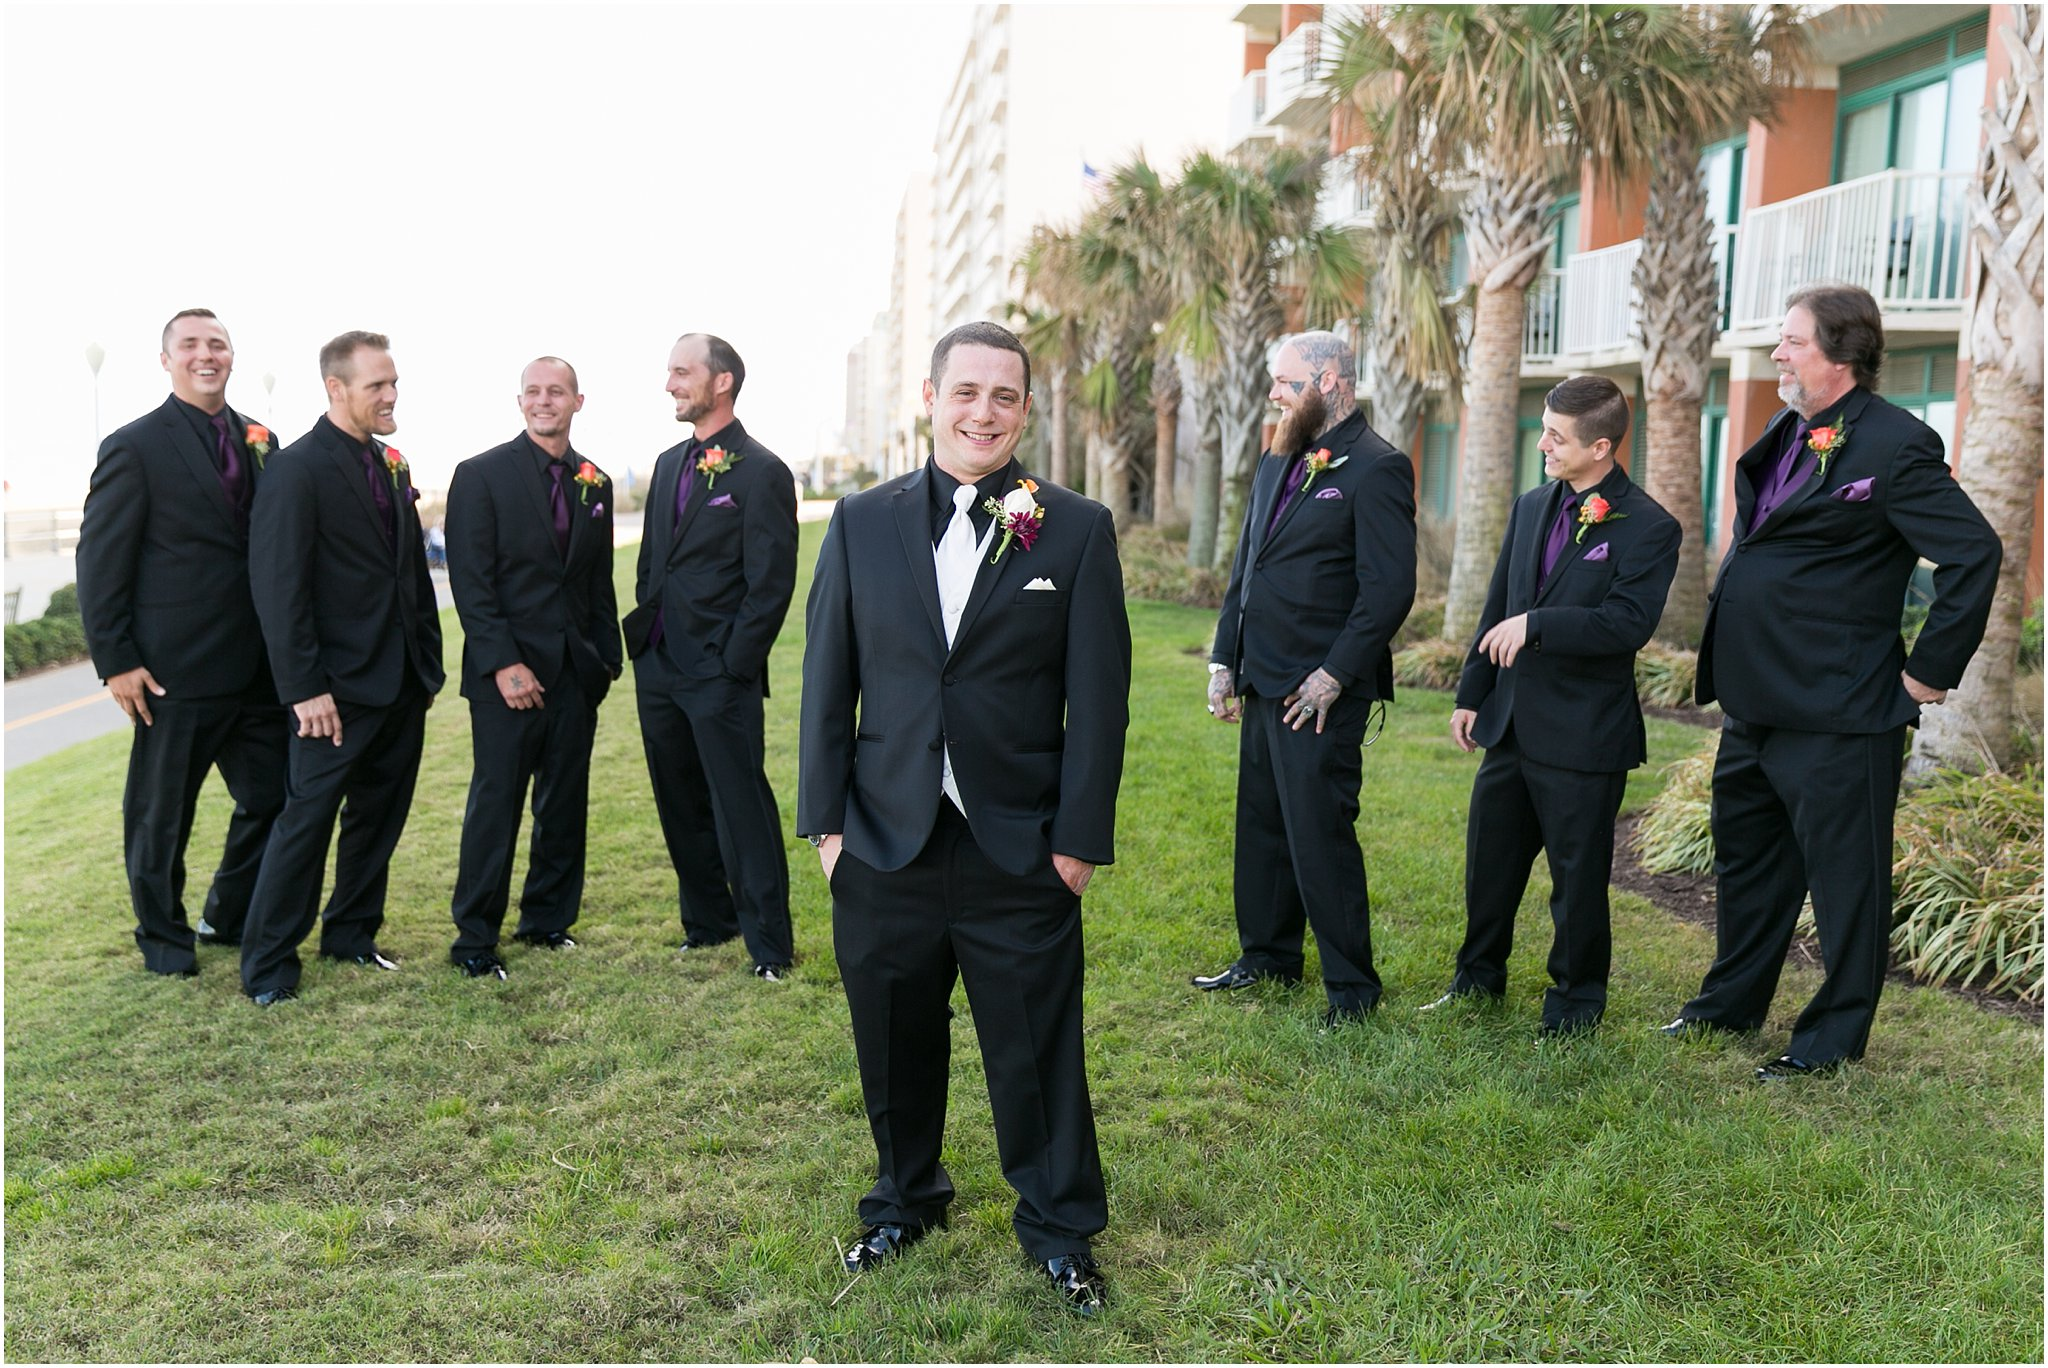 jessica_ryan_photography_wedding_virginia_beach_oceanfront_holiday_inn_north_suites_hotel_wedding_0673